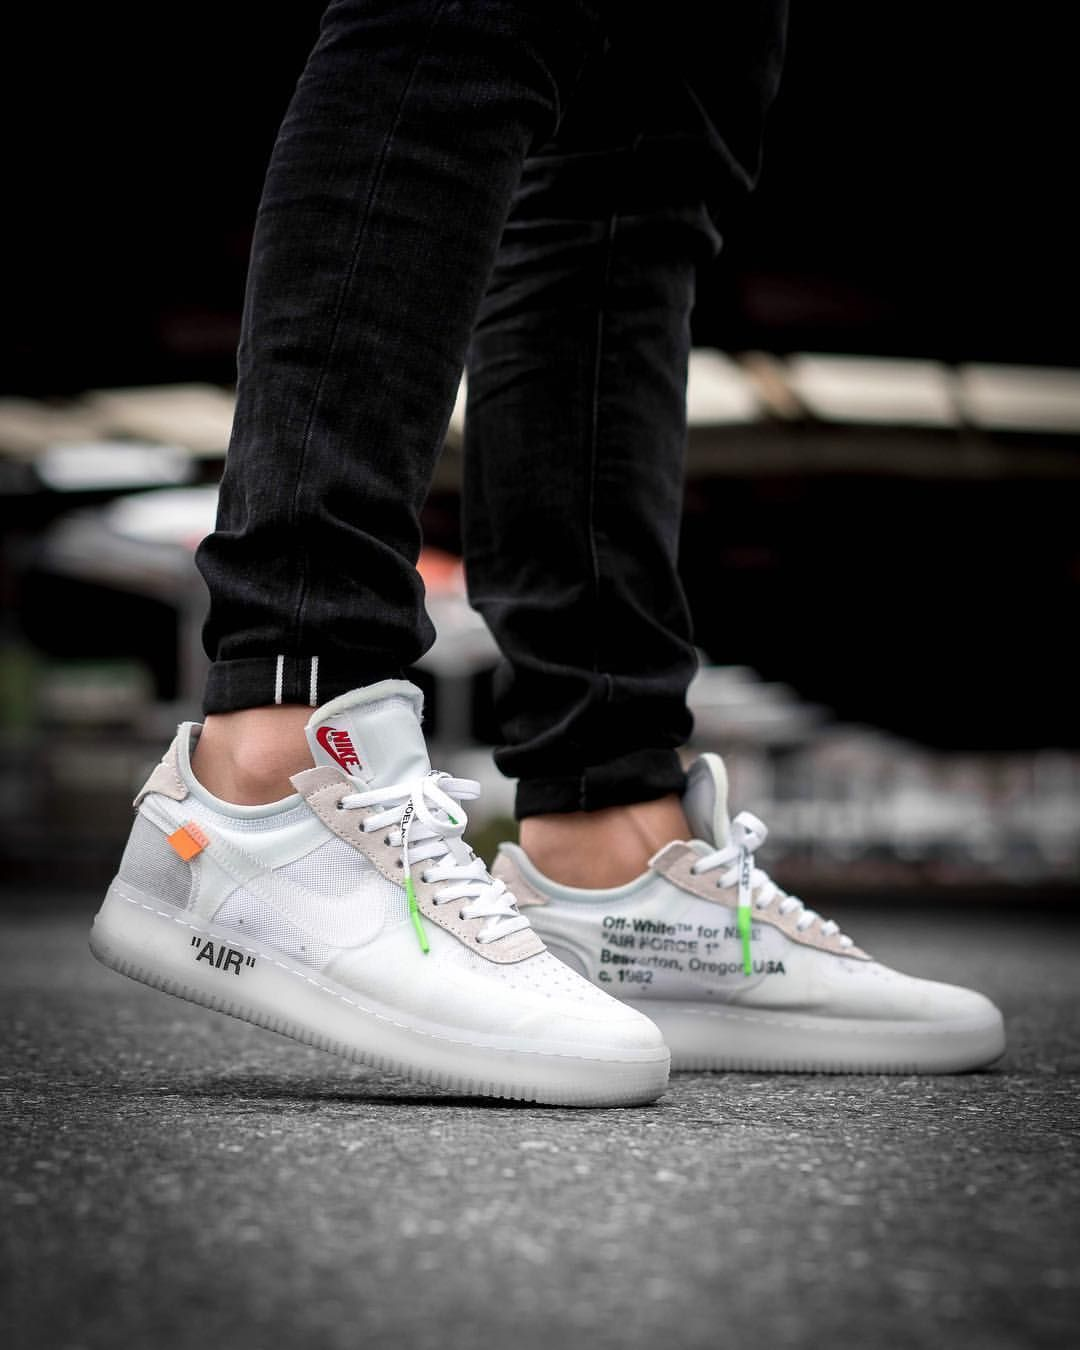 hot sale online b4e96 8a49c Off-White x Nike Air Force 1 Low White On Feet